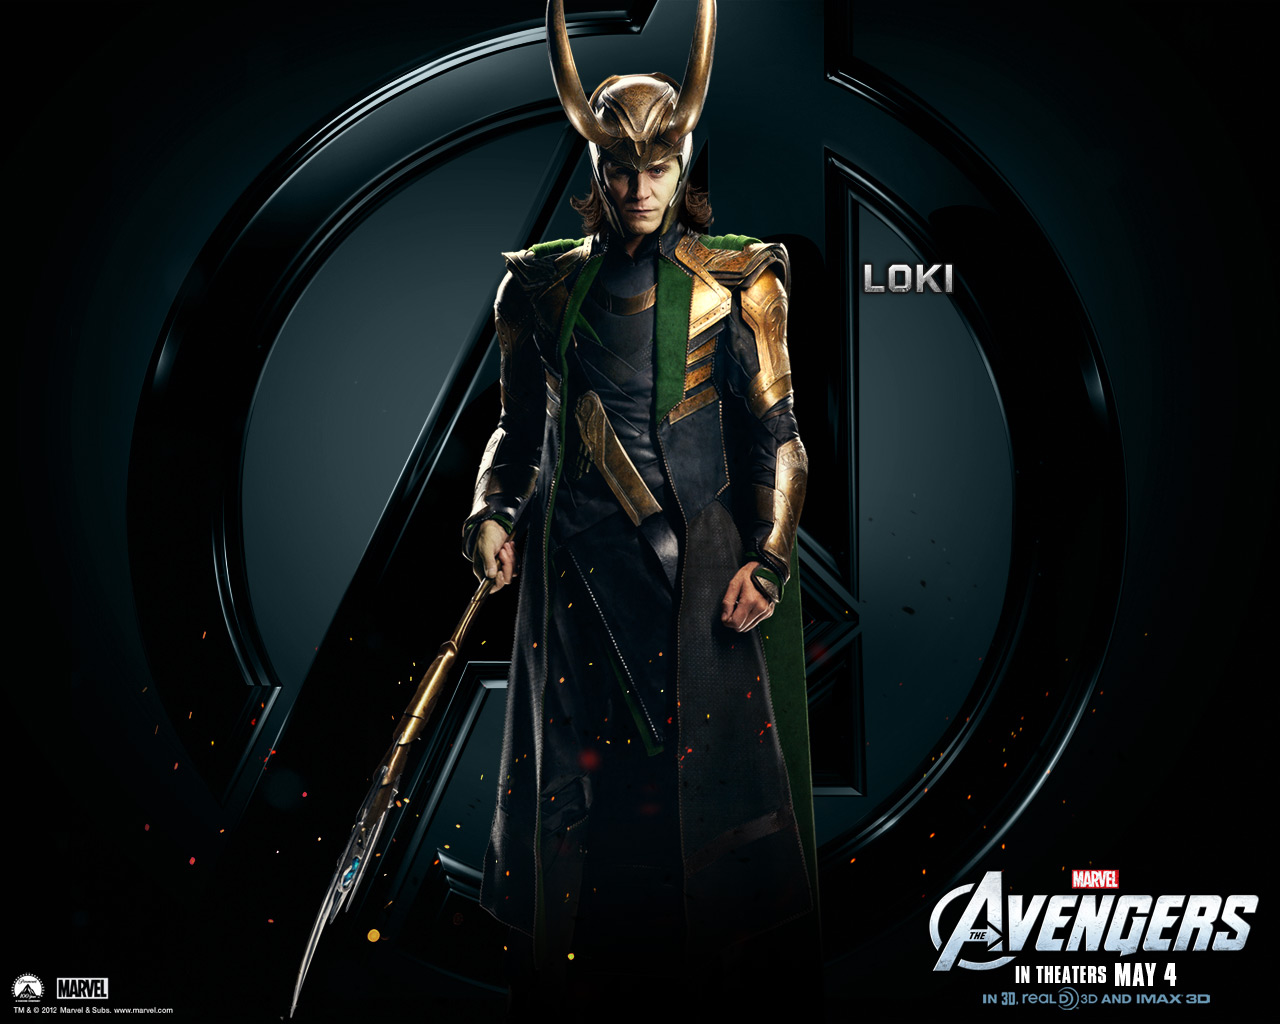 Tom Hiddleston Wallpaper   Tom Hiddleston Wallpaper 31487794 1280x1024